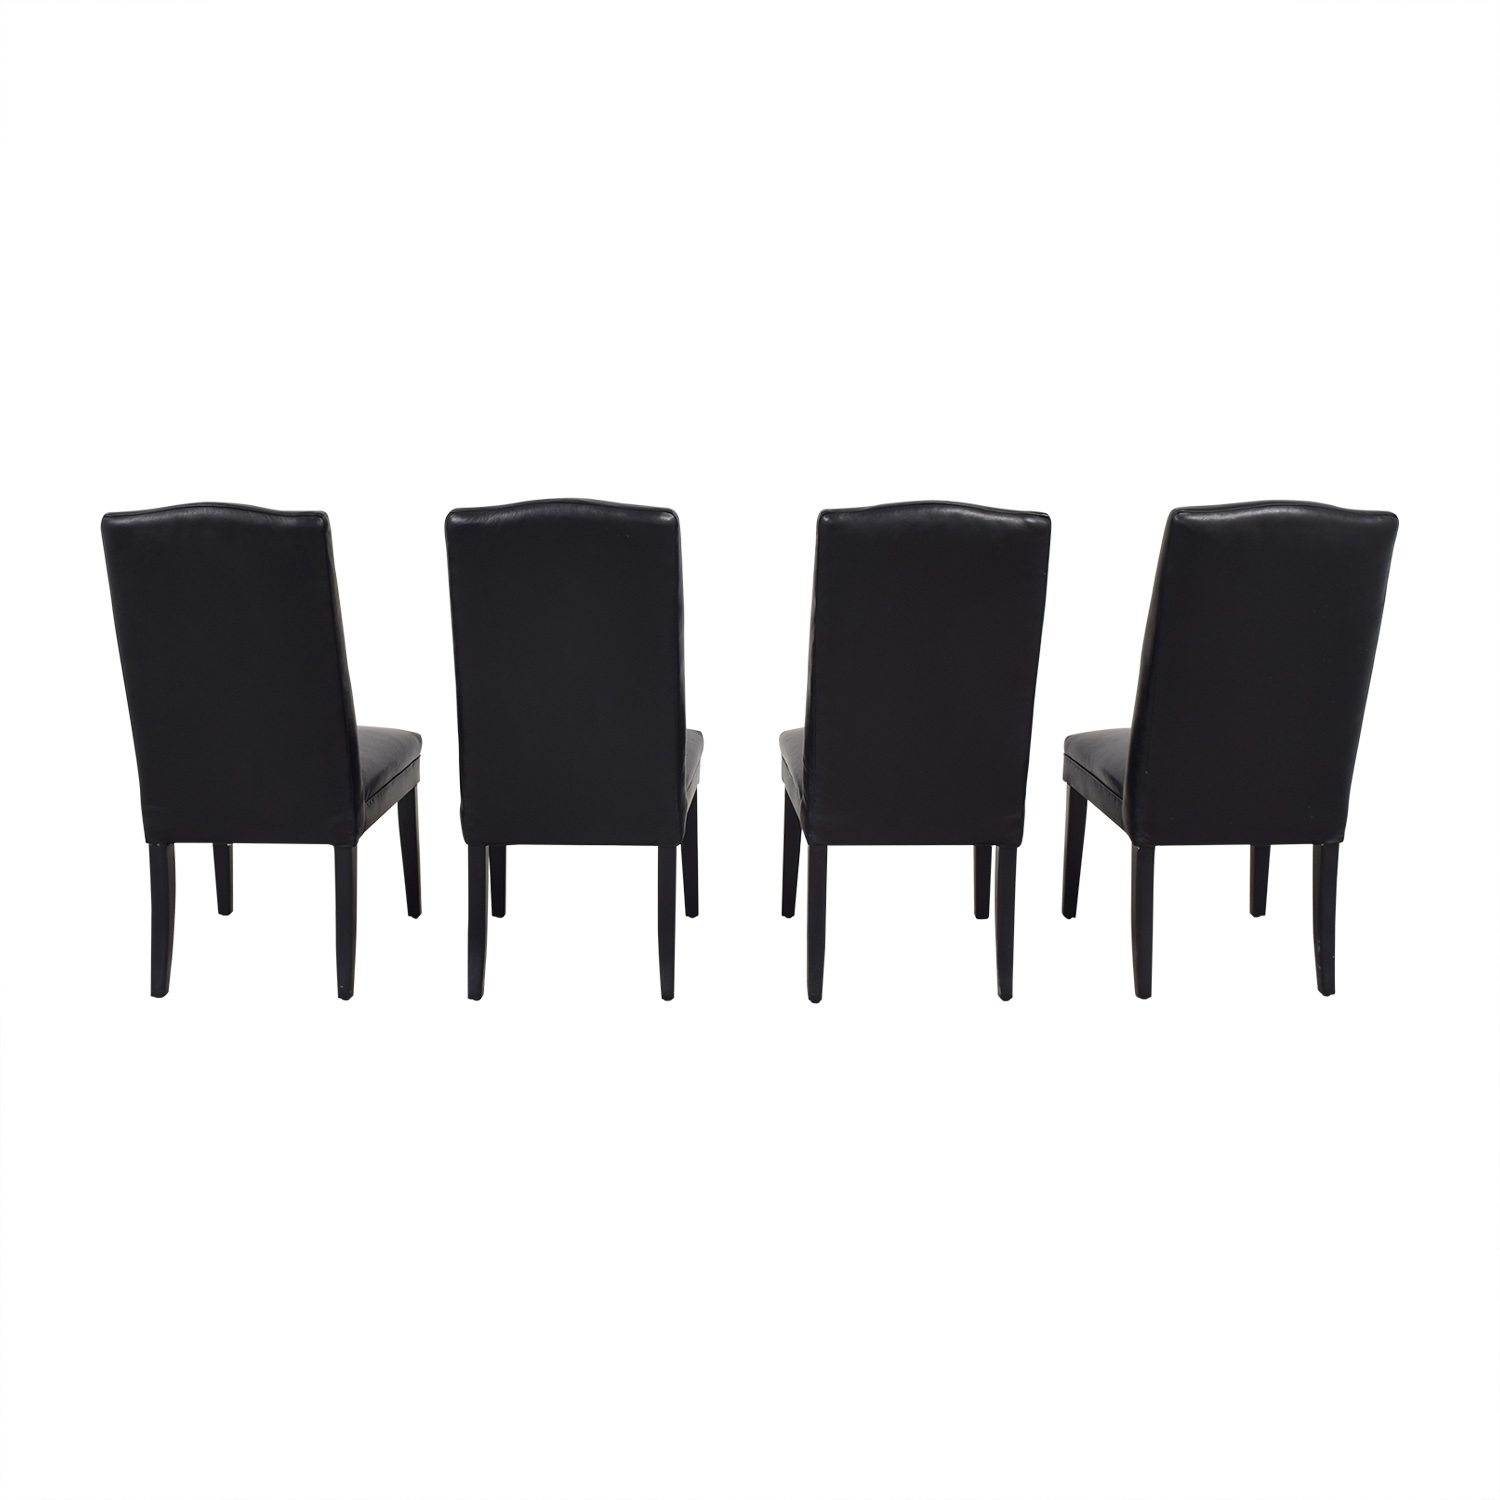 Classic Style High Back Dining Chairs / Chairs